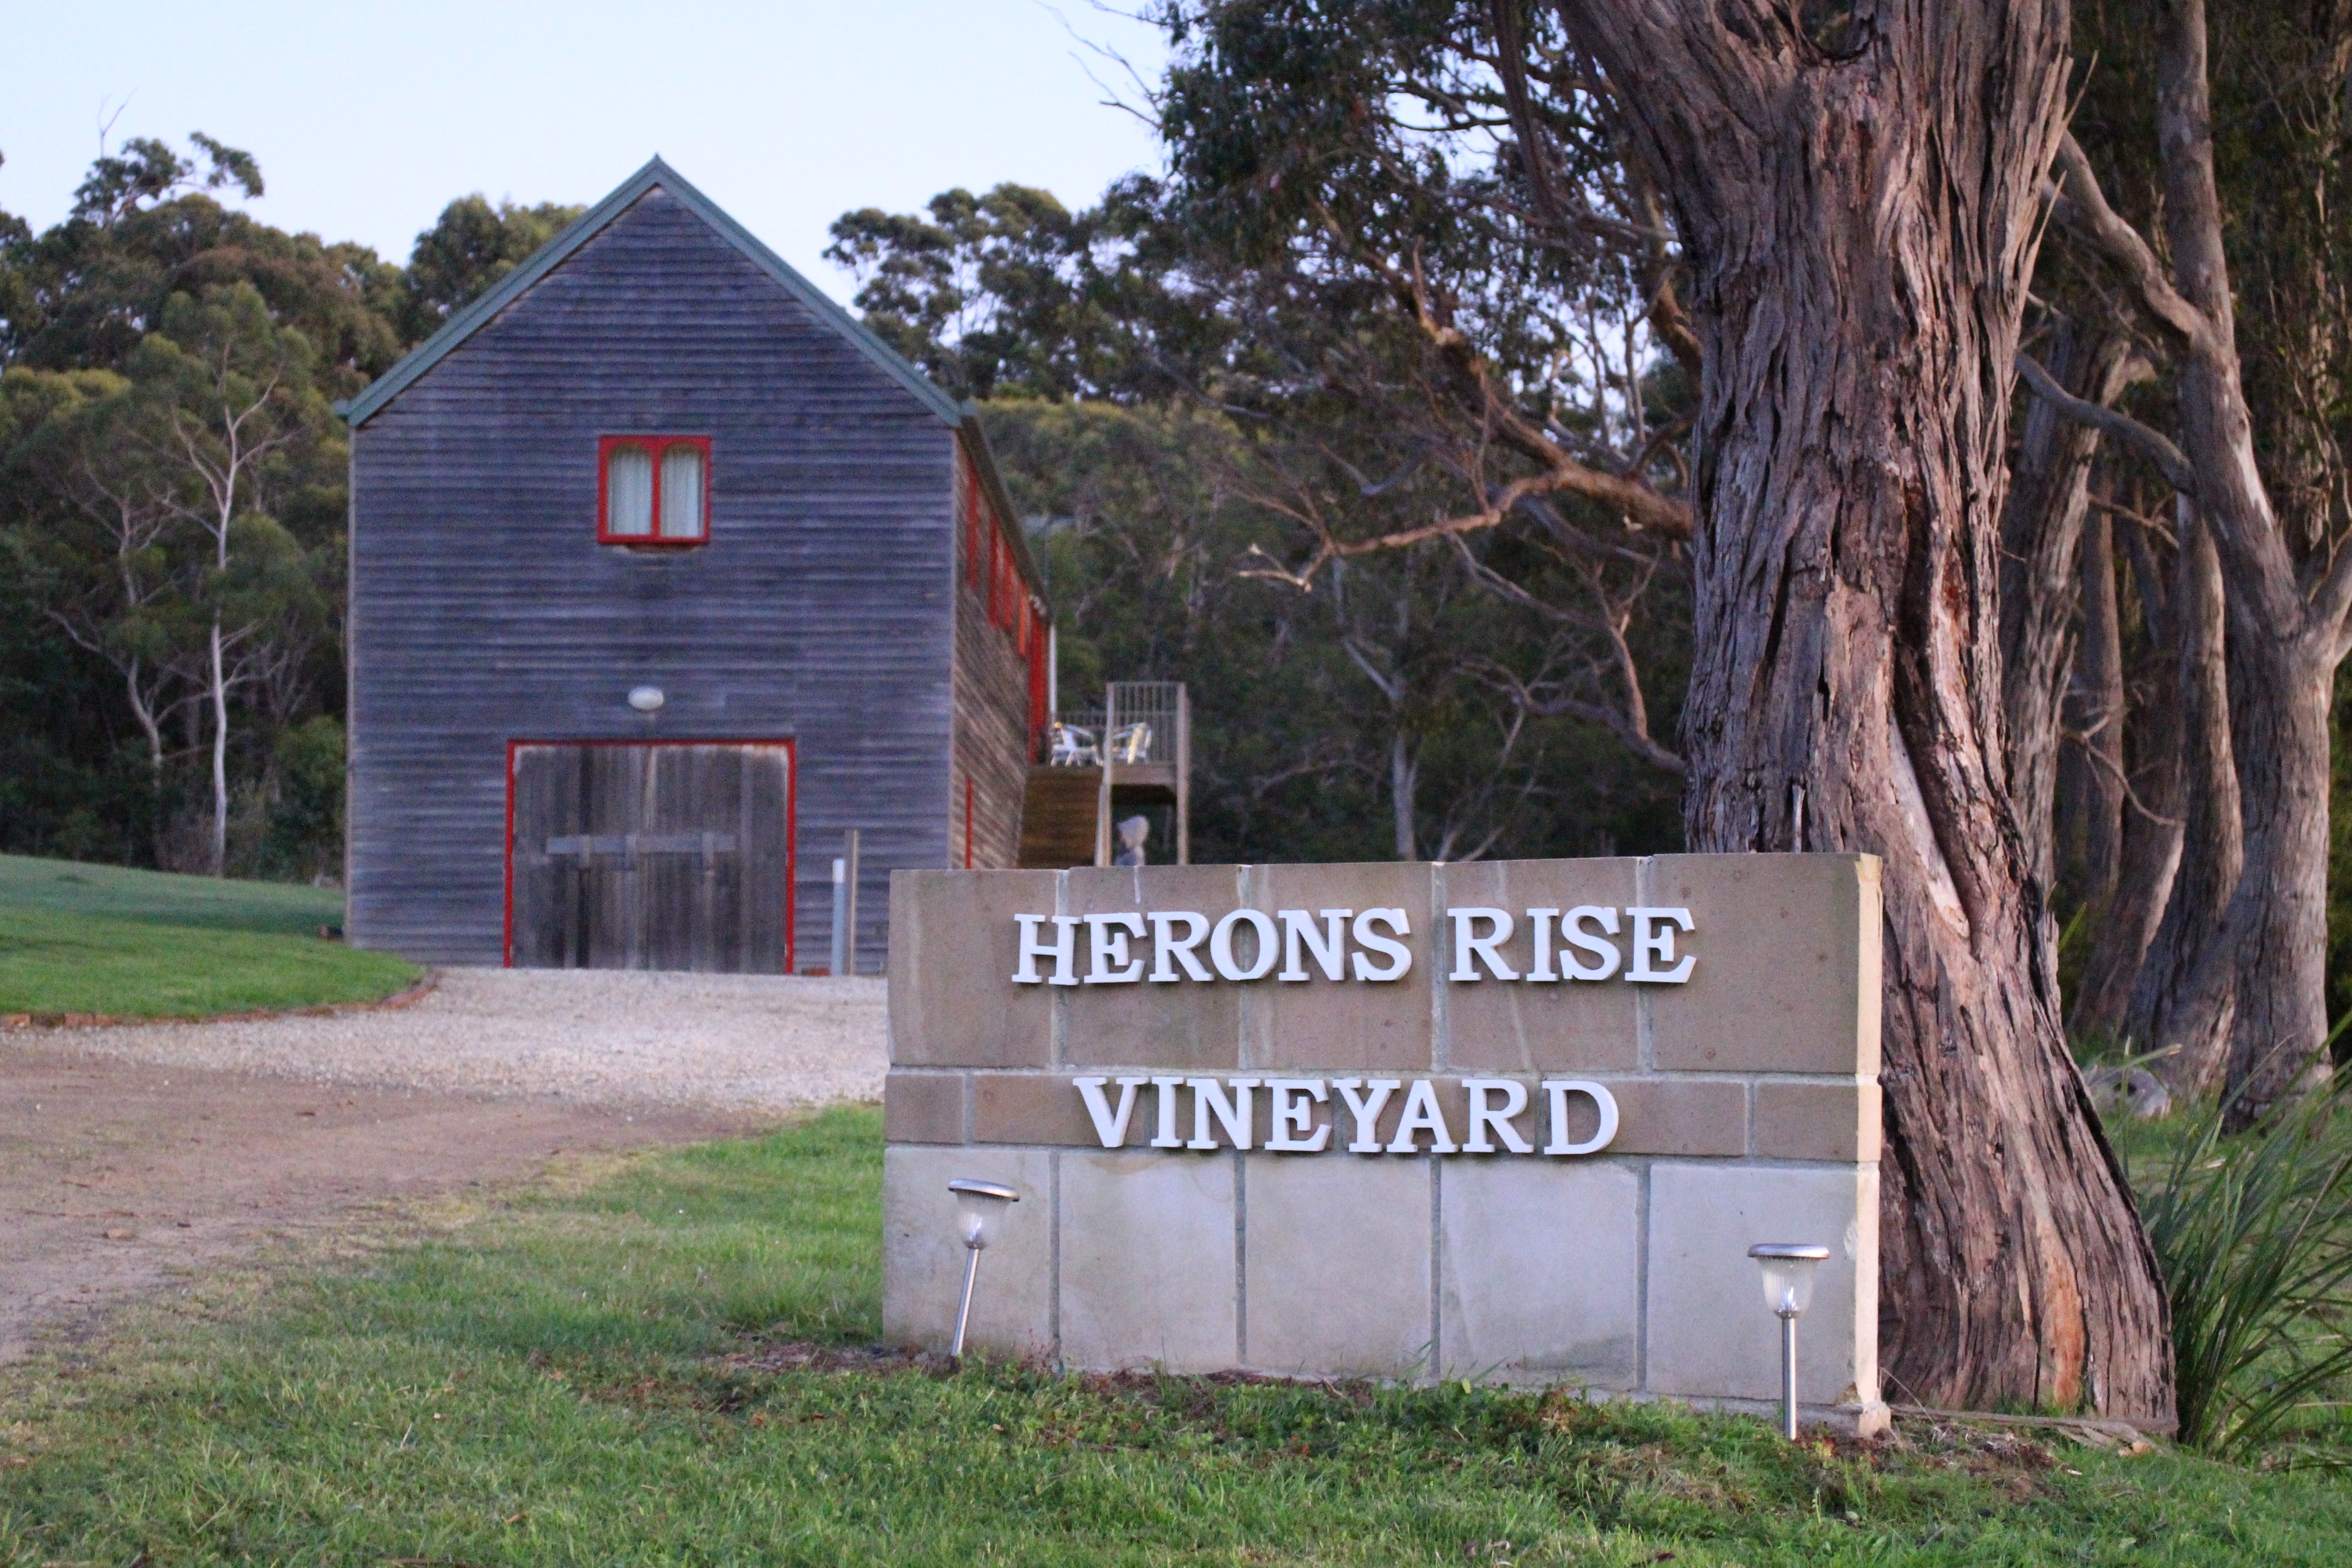 Herons Rise Vineyard